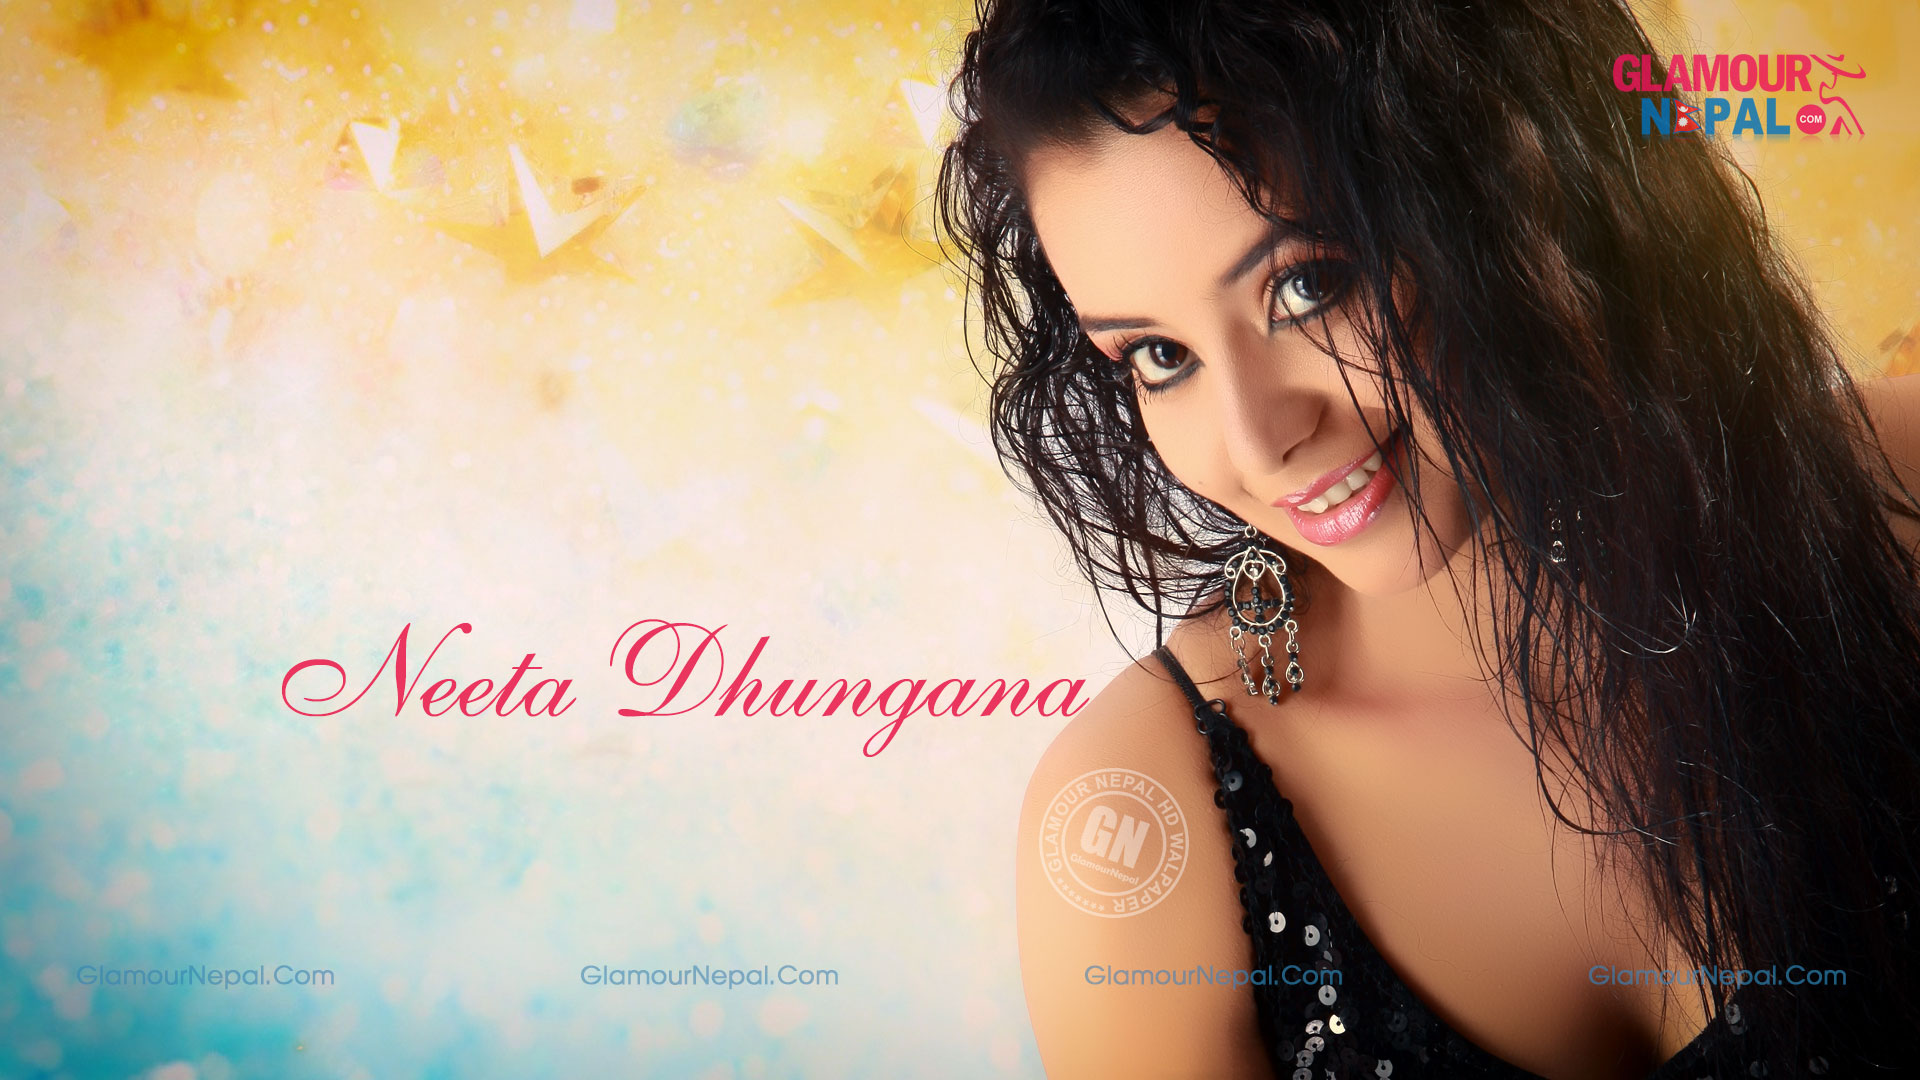 neeta dhungana hd wallpaper download | glamour nepal